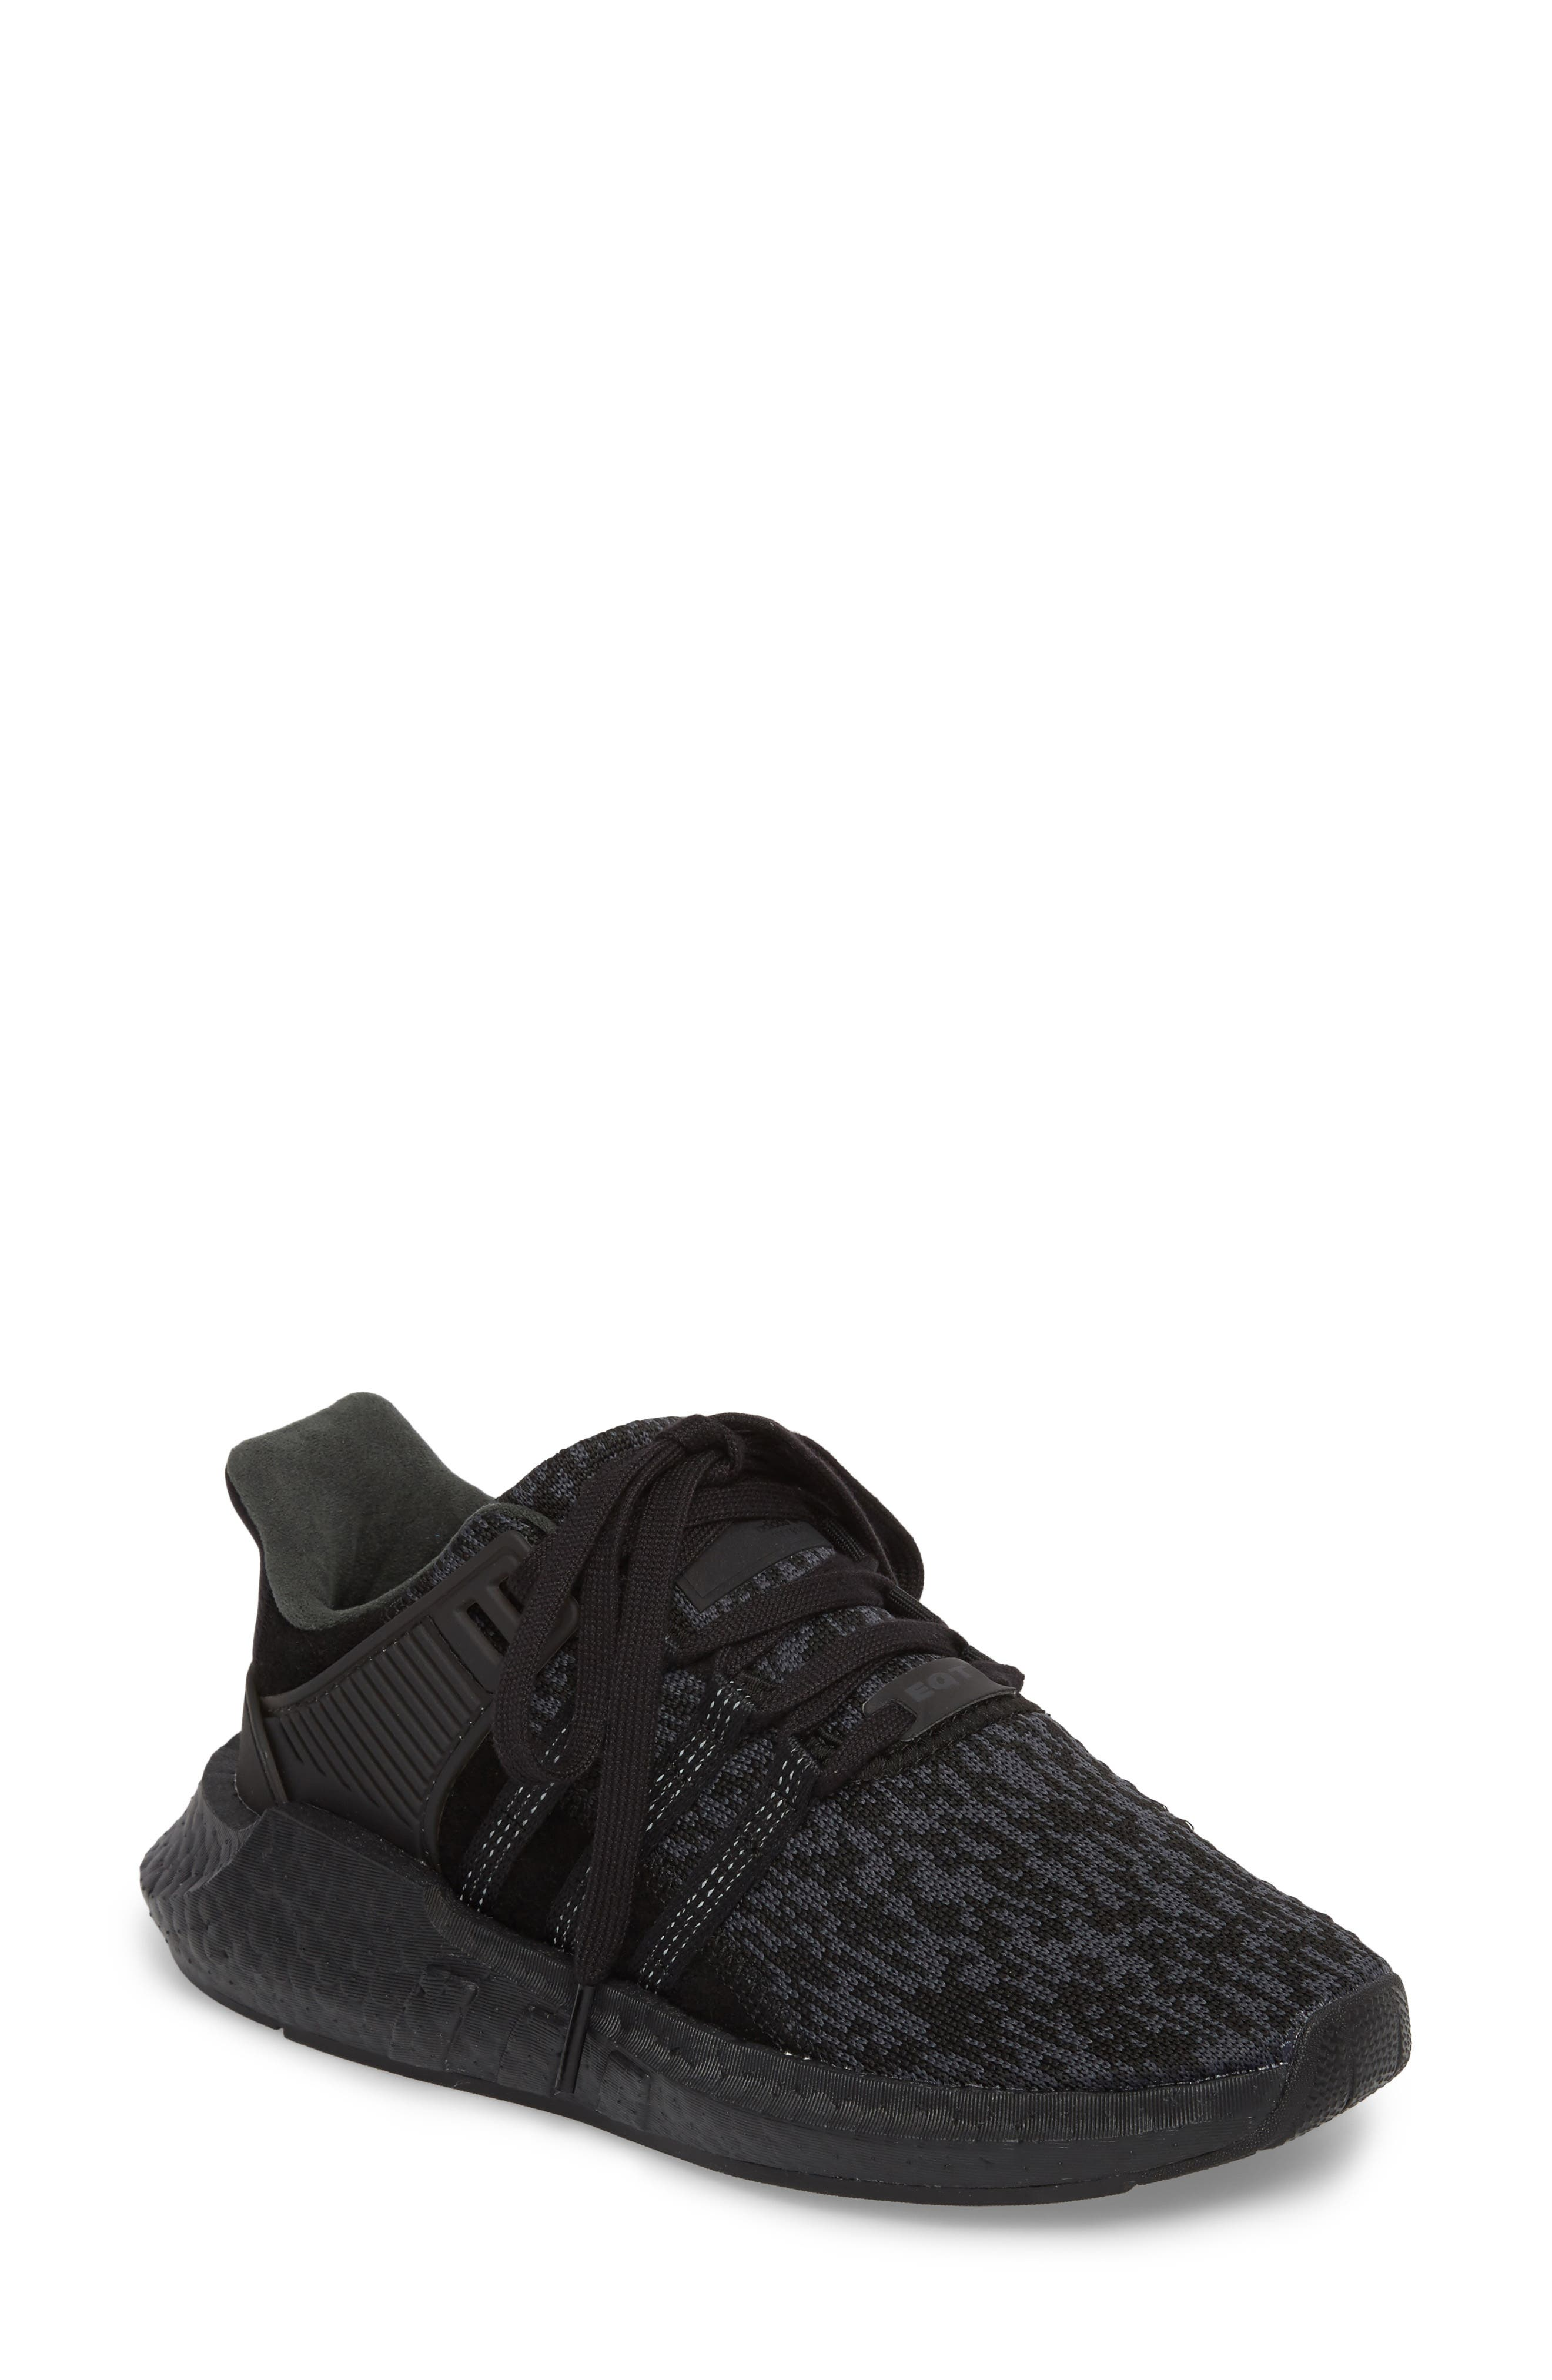 Alternate Image 1 Selected - adidas EQT Support 93/17 Sneaker (Women)